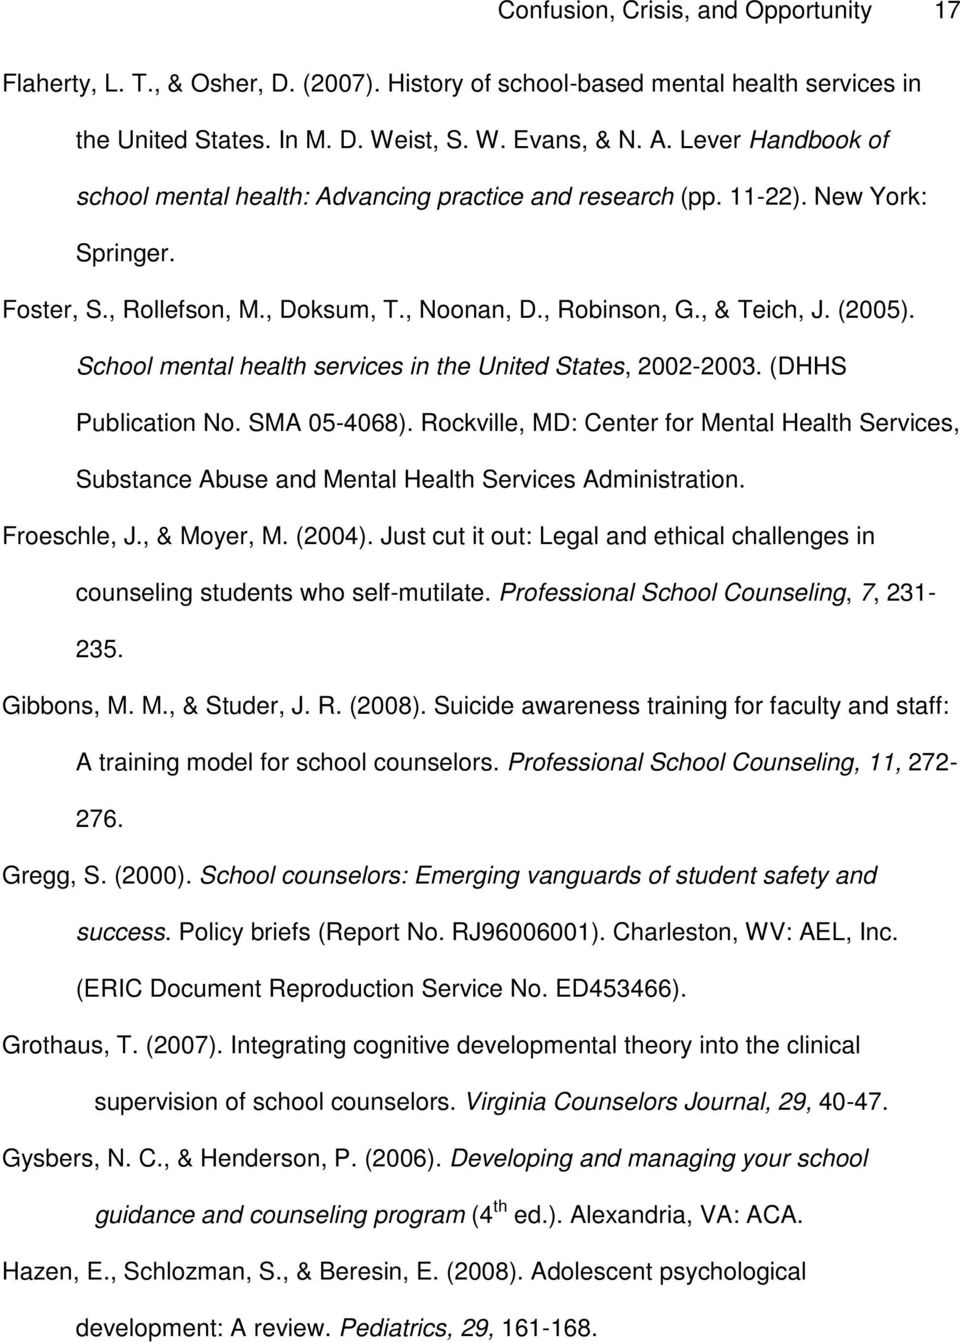 School mental health services in the United States, 2002-2003. (DHHS Publication No. SMA 05-4068).